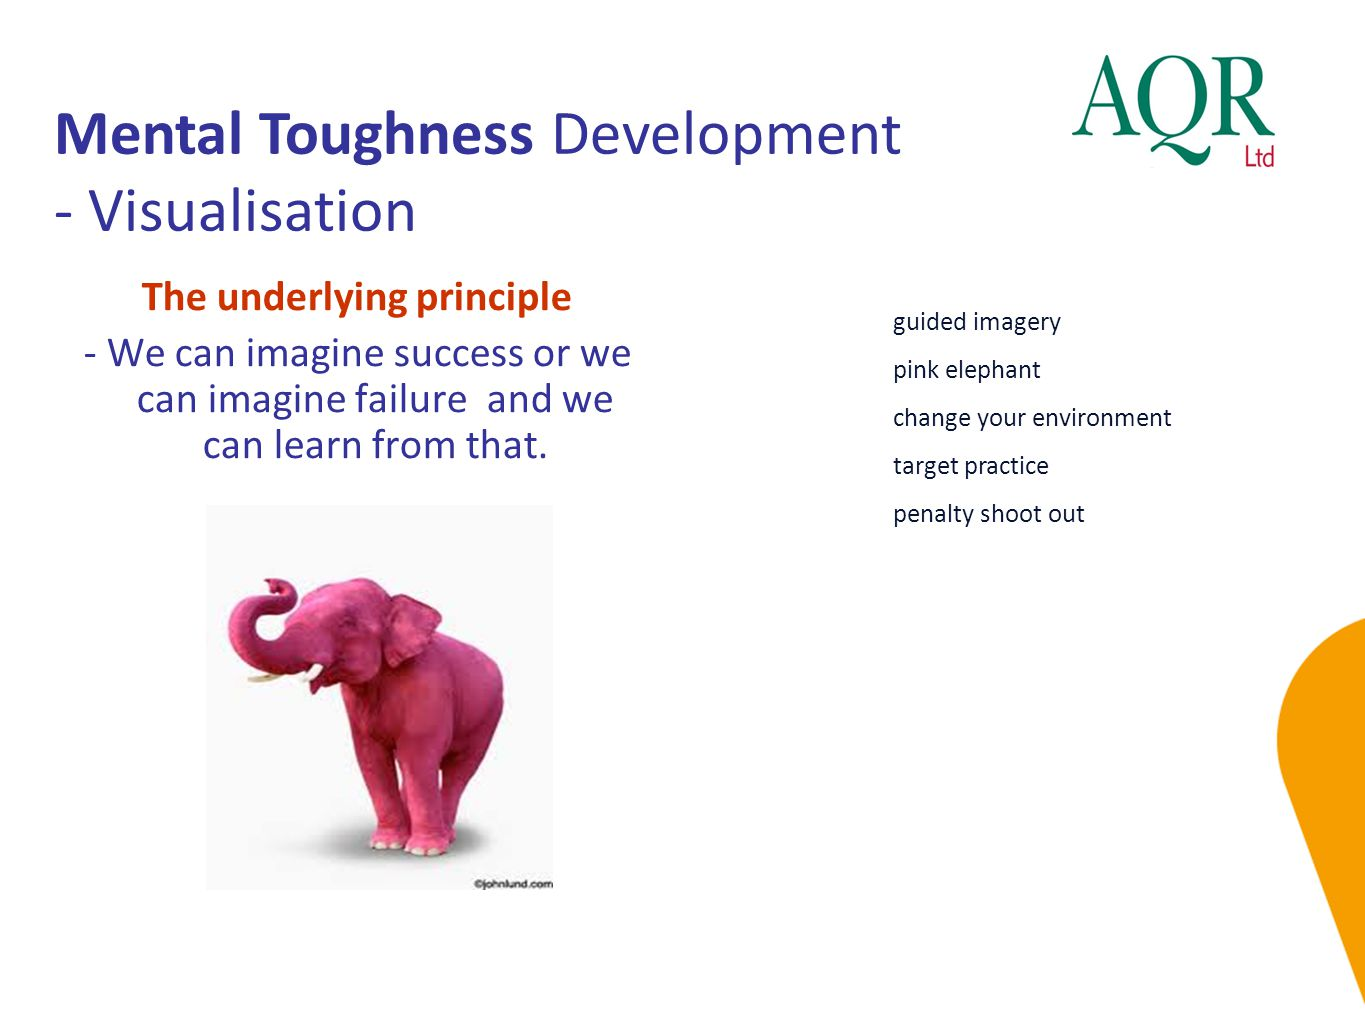 Mental Toughness Development - Visualisation